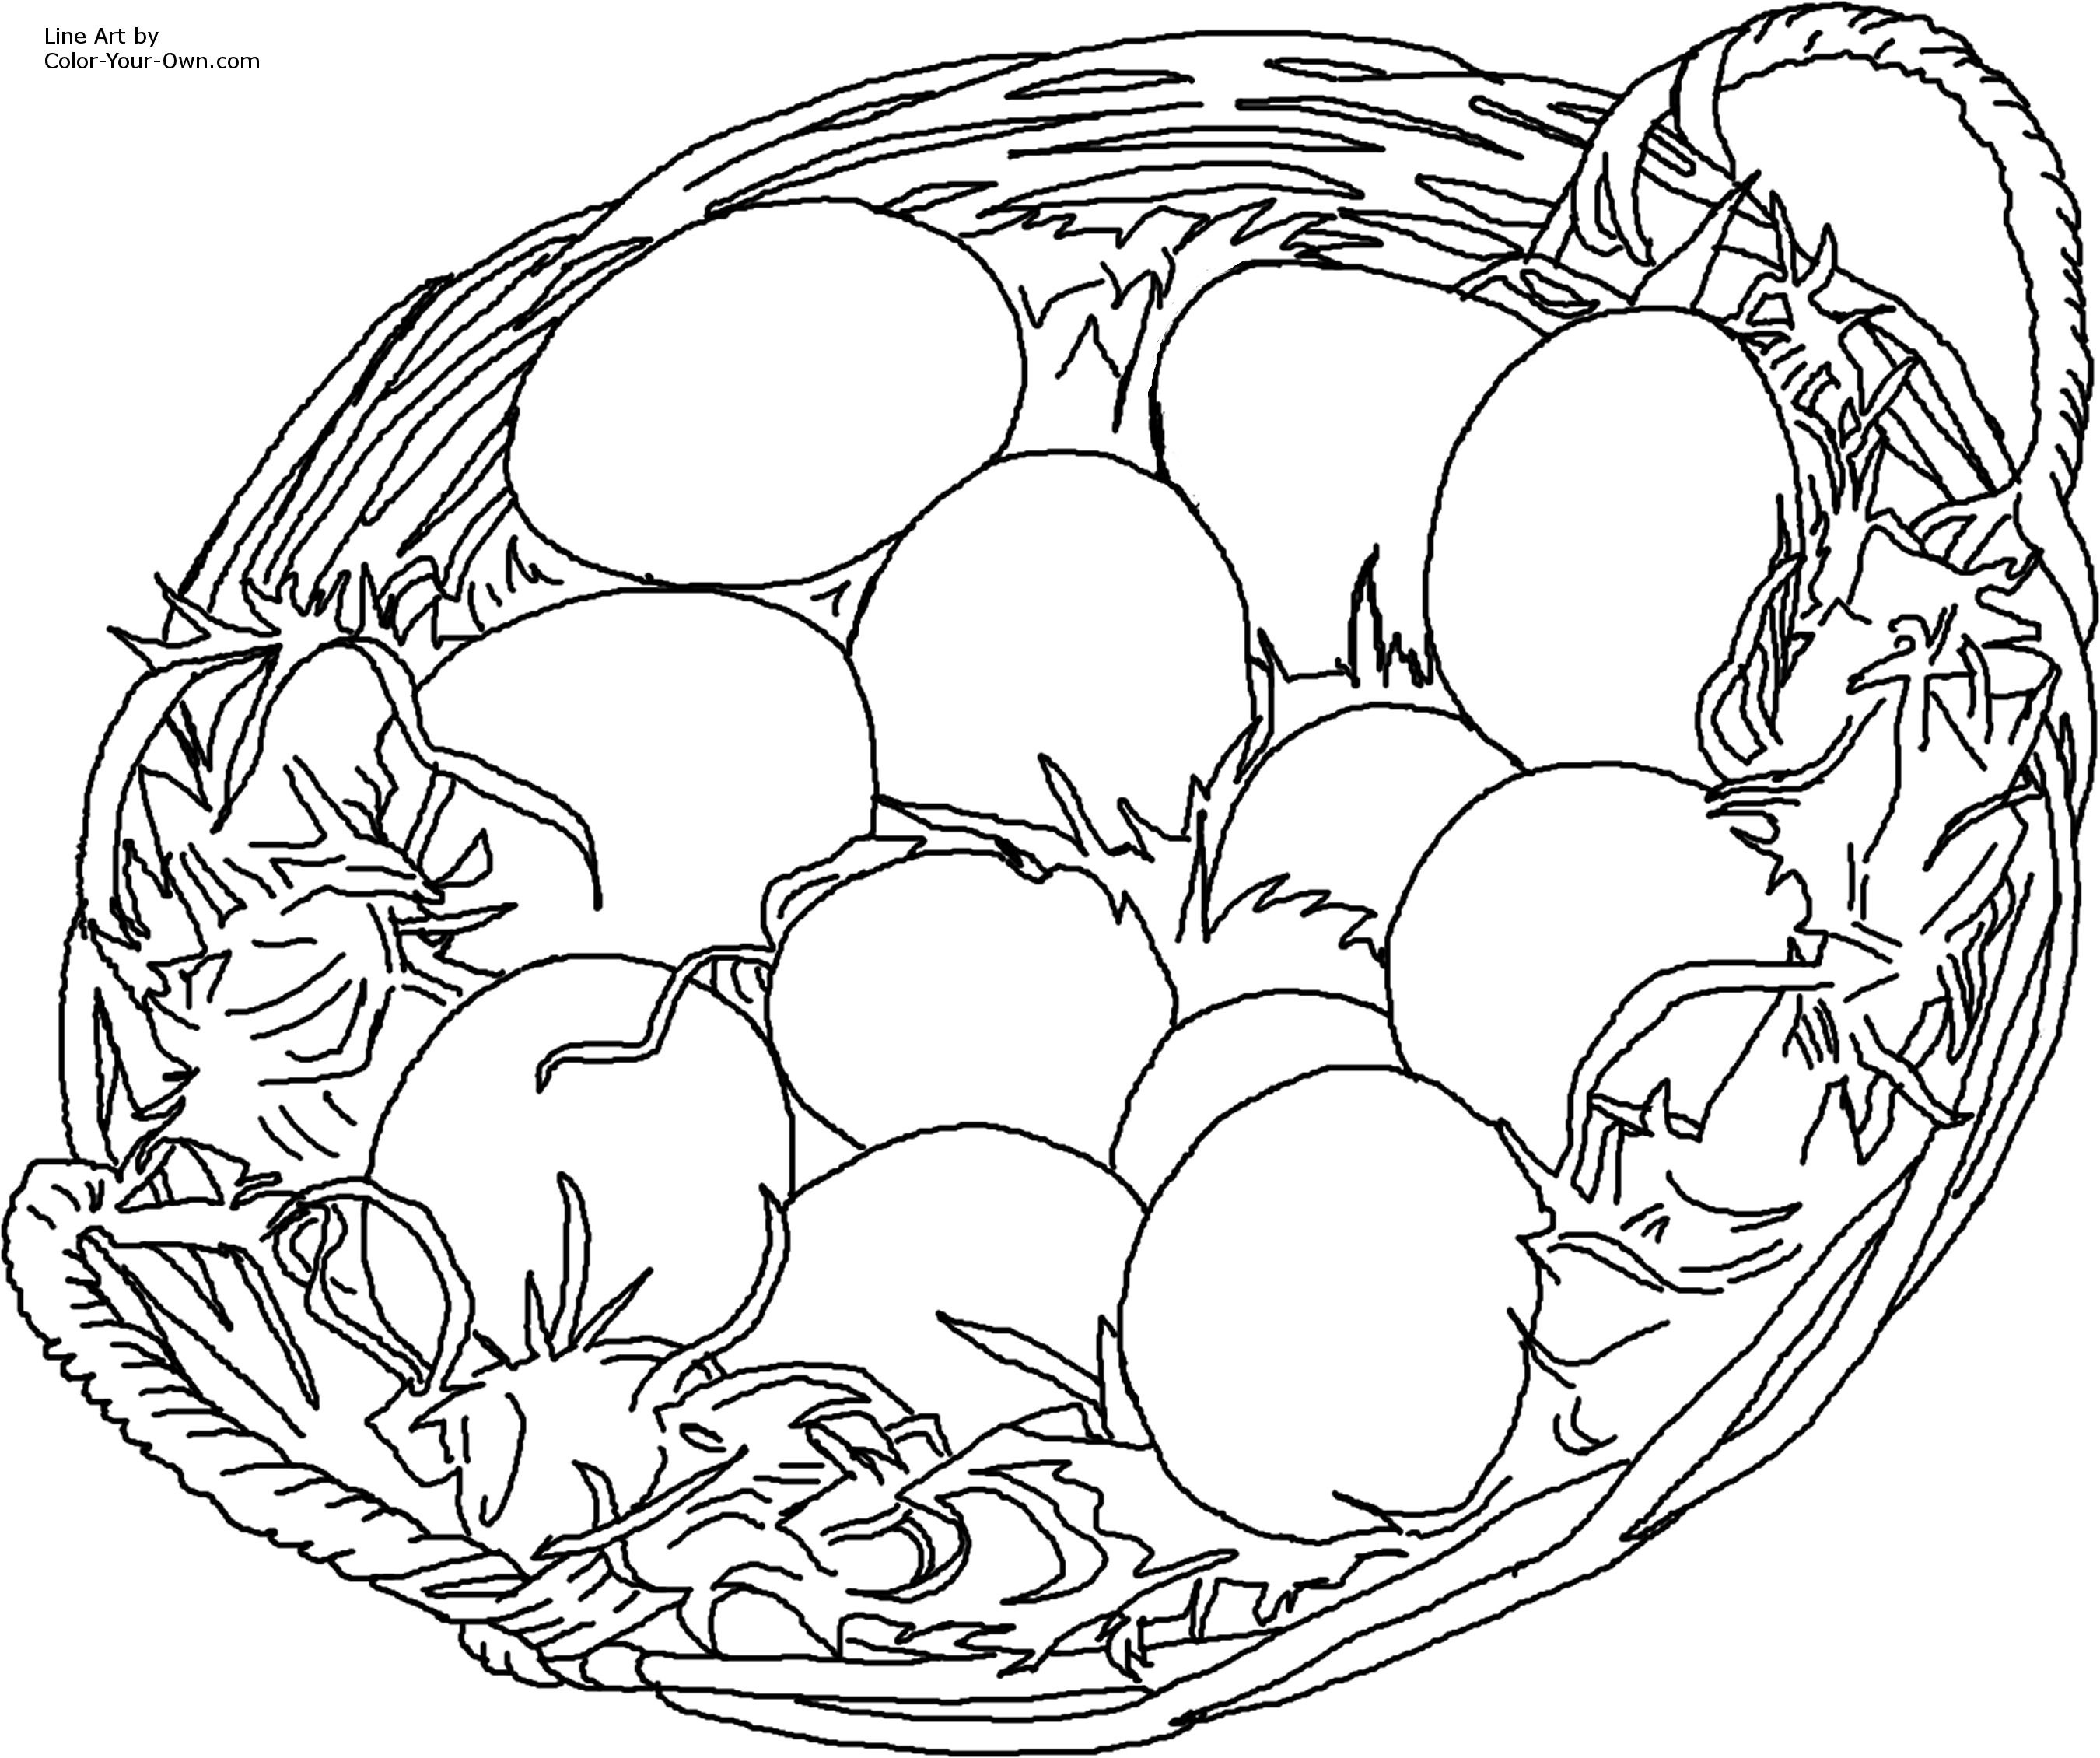 printable size click here return to the coloring pages index - Easter Basket Coloring Pages